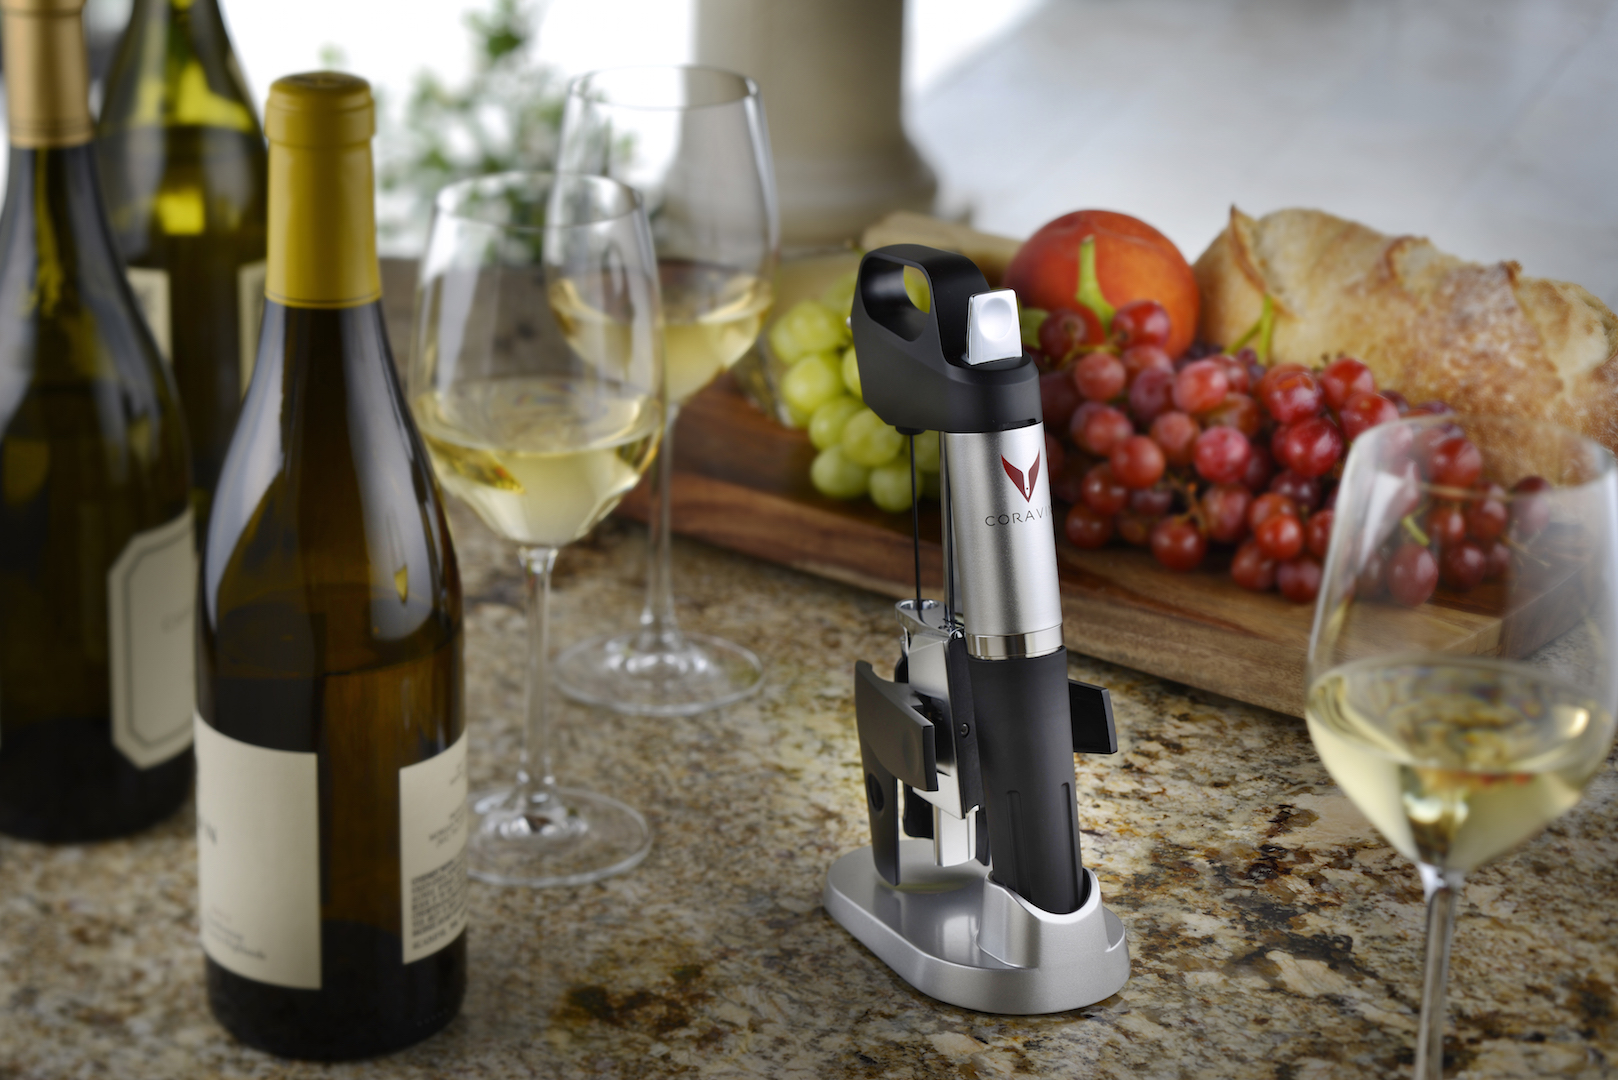 Coravin Lifestyle Shot - Pour enjoy and repeat